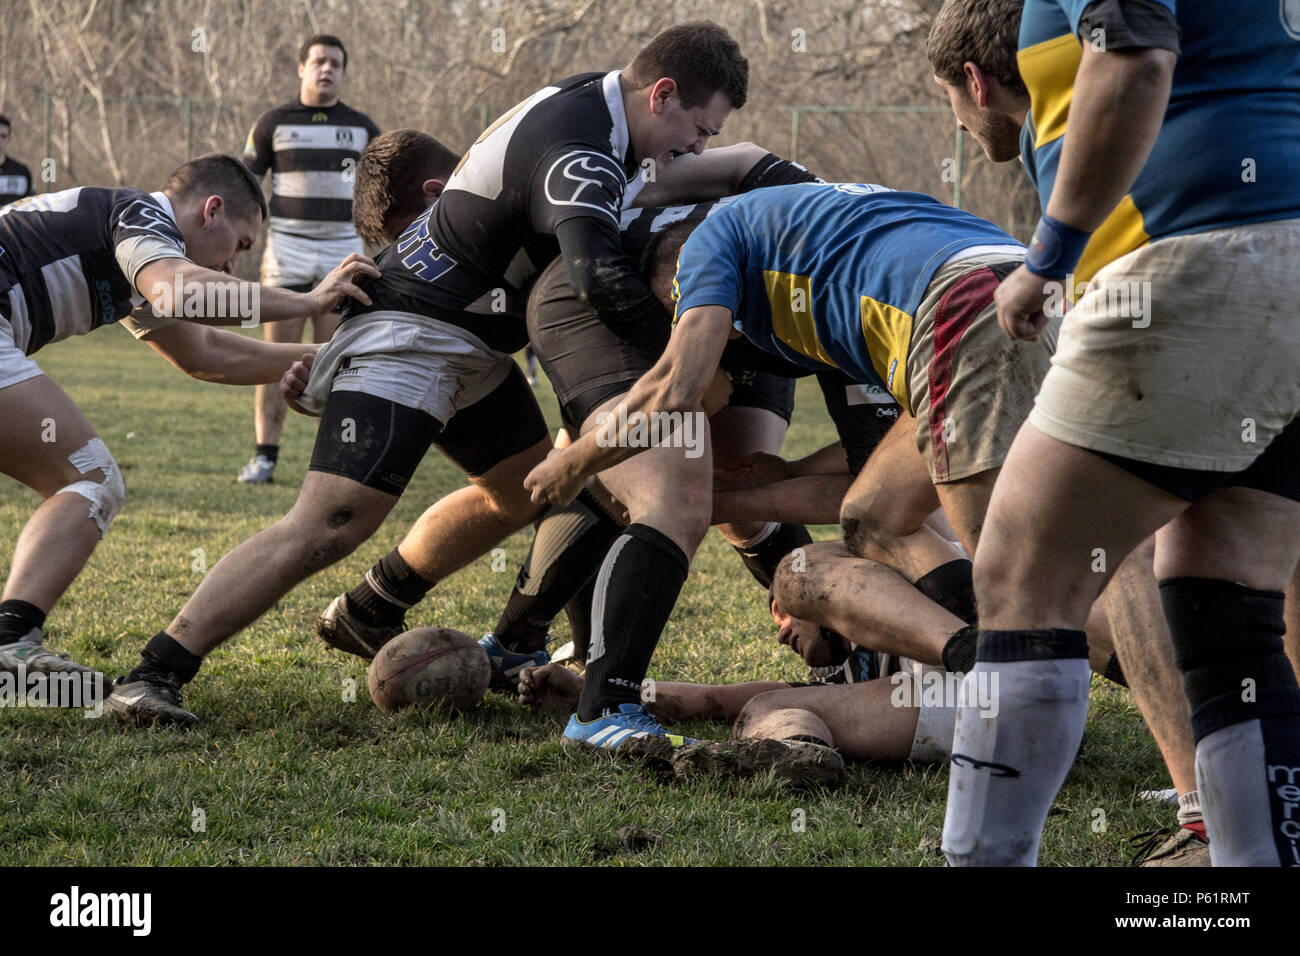 BELGRADE, SERBIA - MARCH 1, 2015:  Rugby Scrum during a training of the Partizan Rugby team with white caucasian men confronting and packing in group  - Stock Image